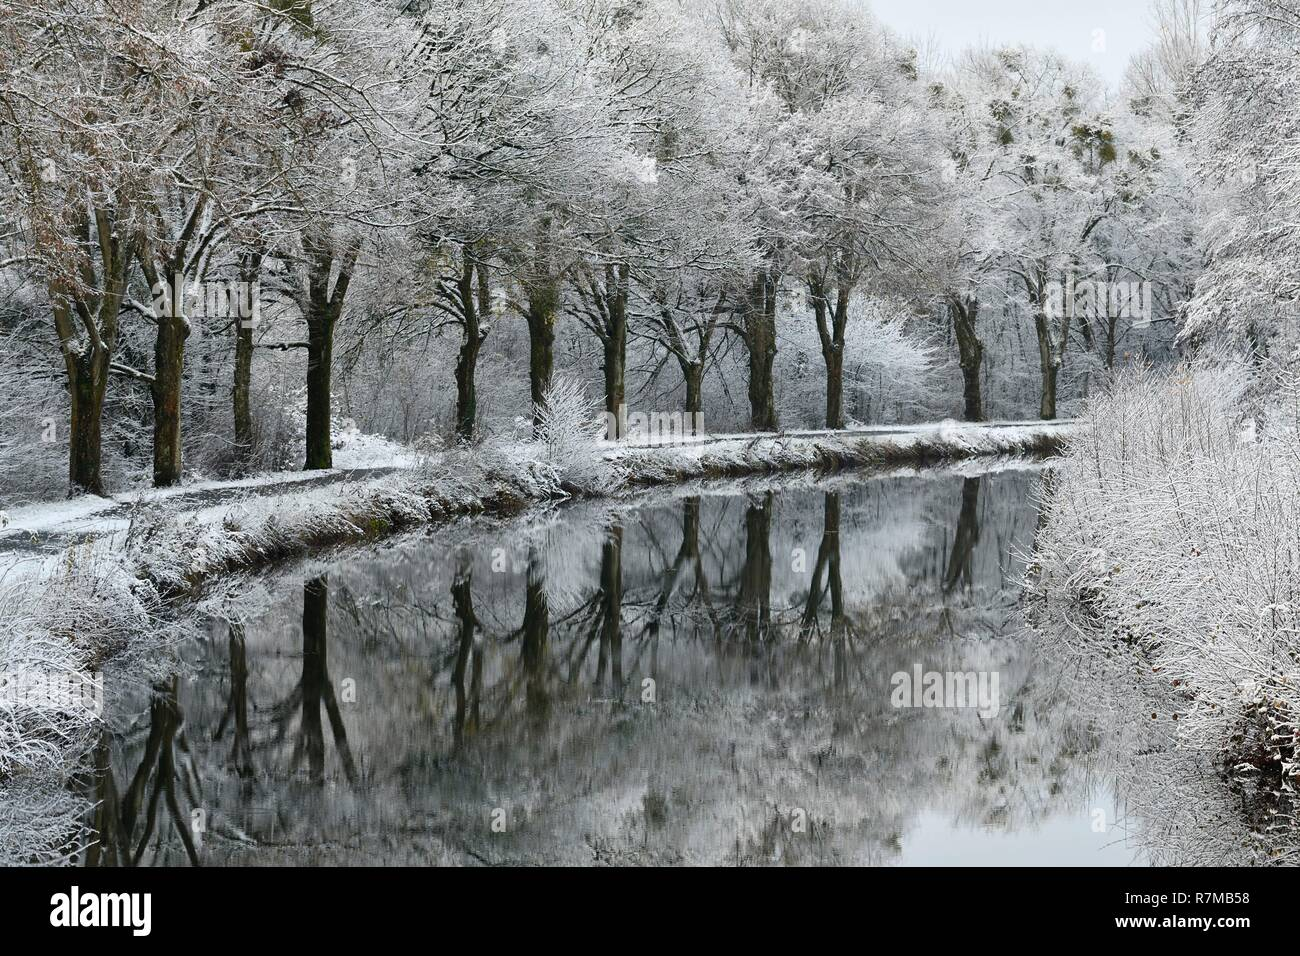 France, Doubs, Brognard, channel of Haut Saone in winter under the snow, hauling landscaped in green casting - Stock Image